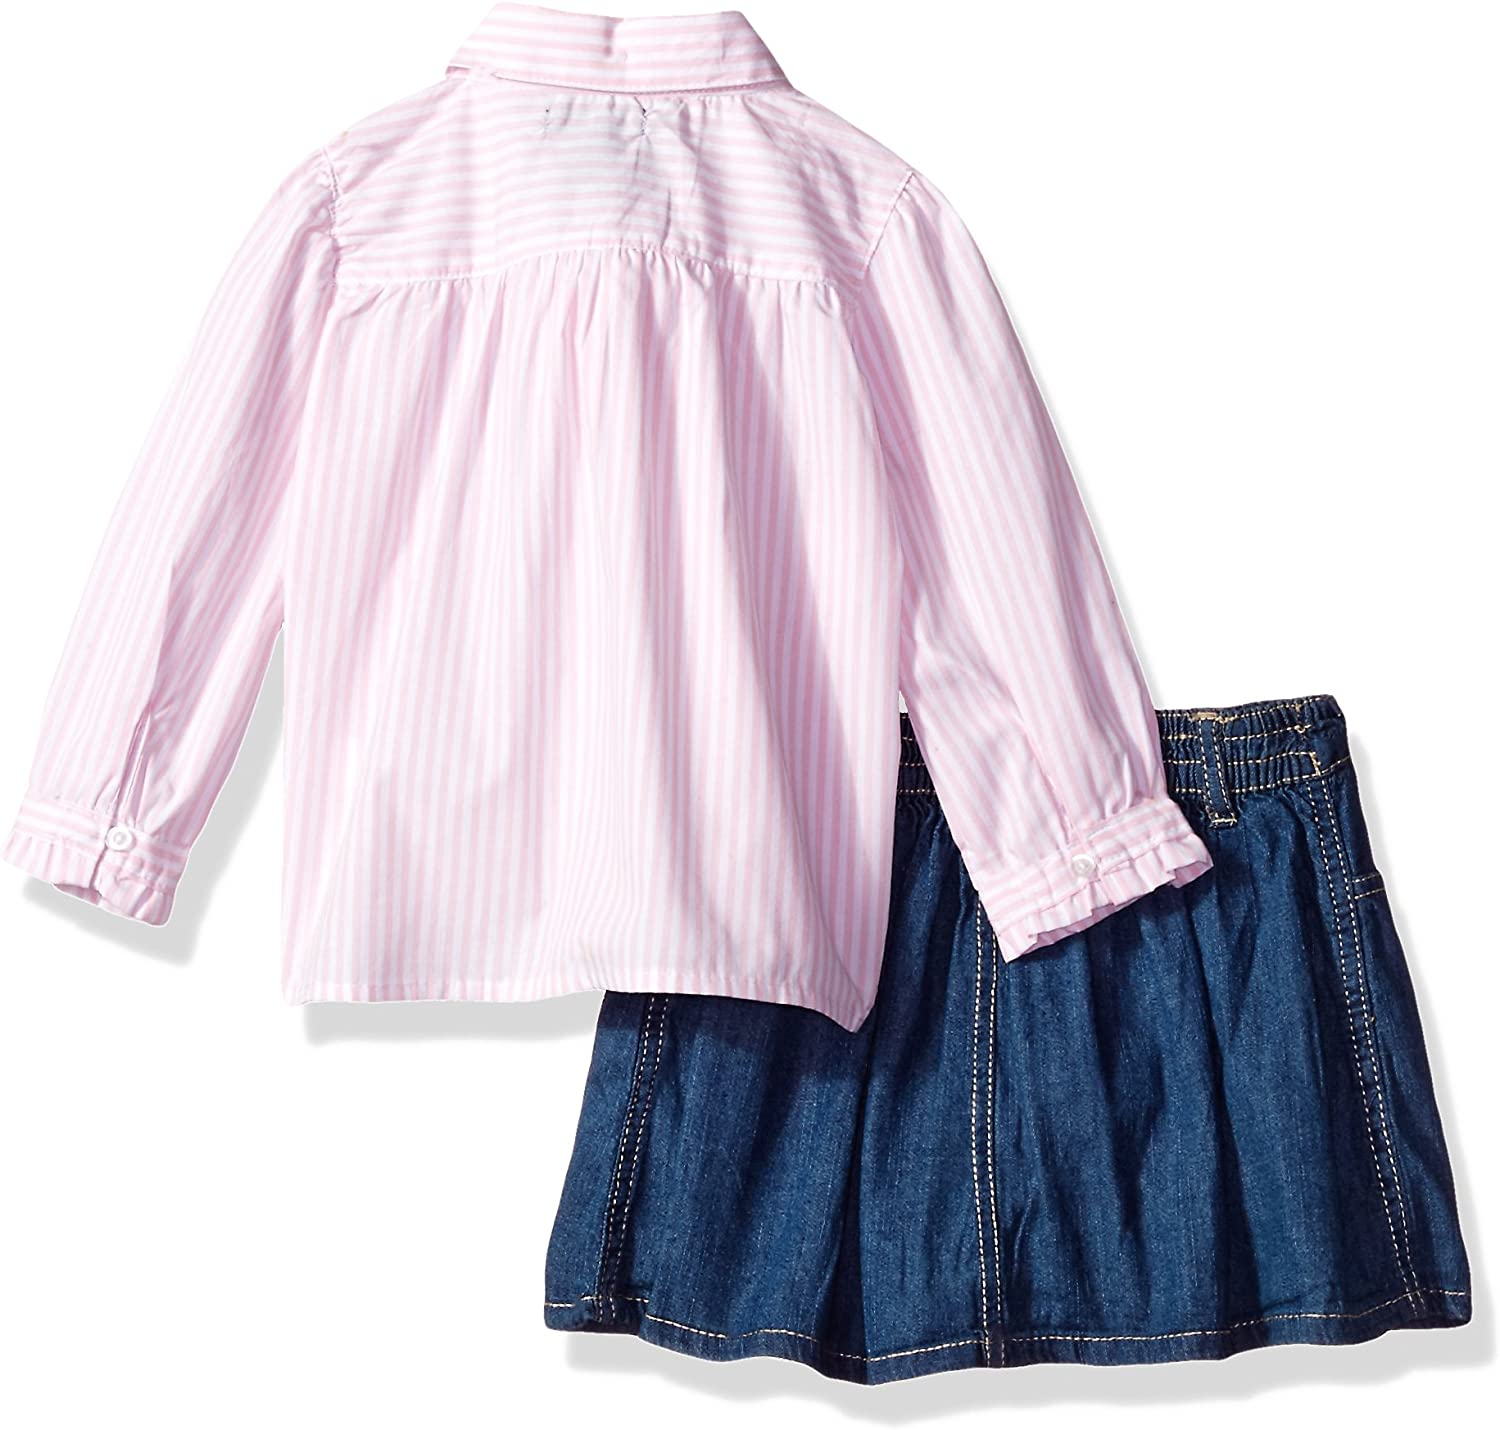 Polo Assn U.S Girls Fashion Top and Skort Set